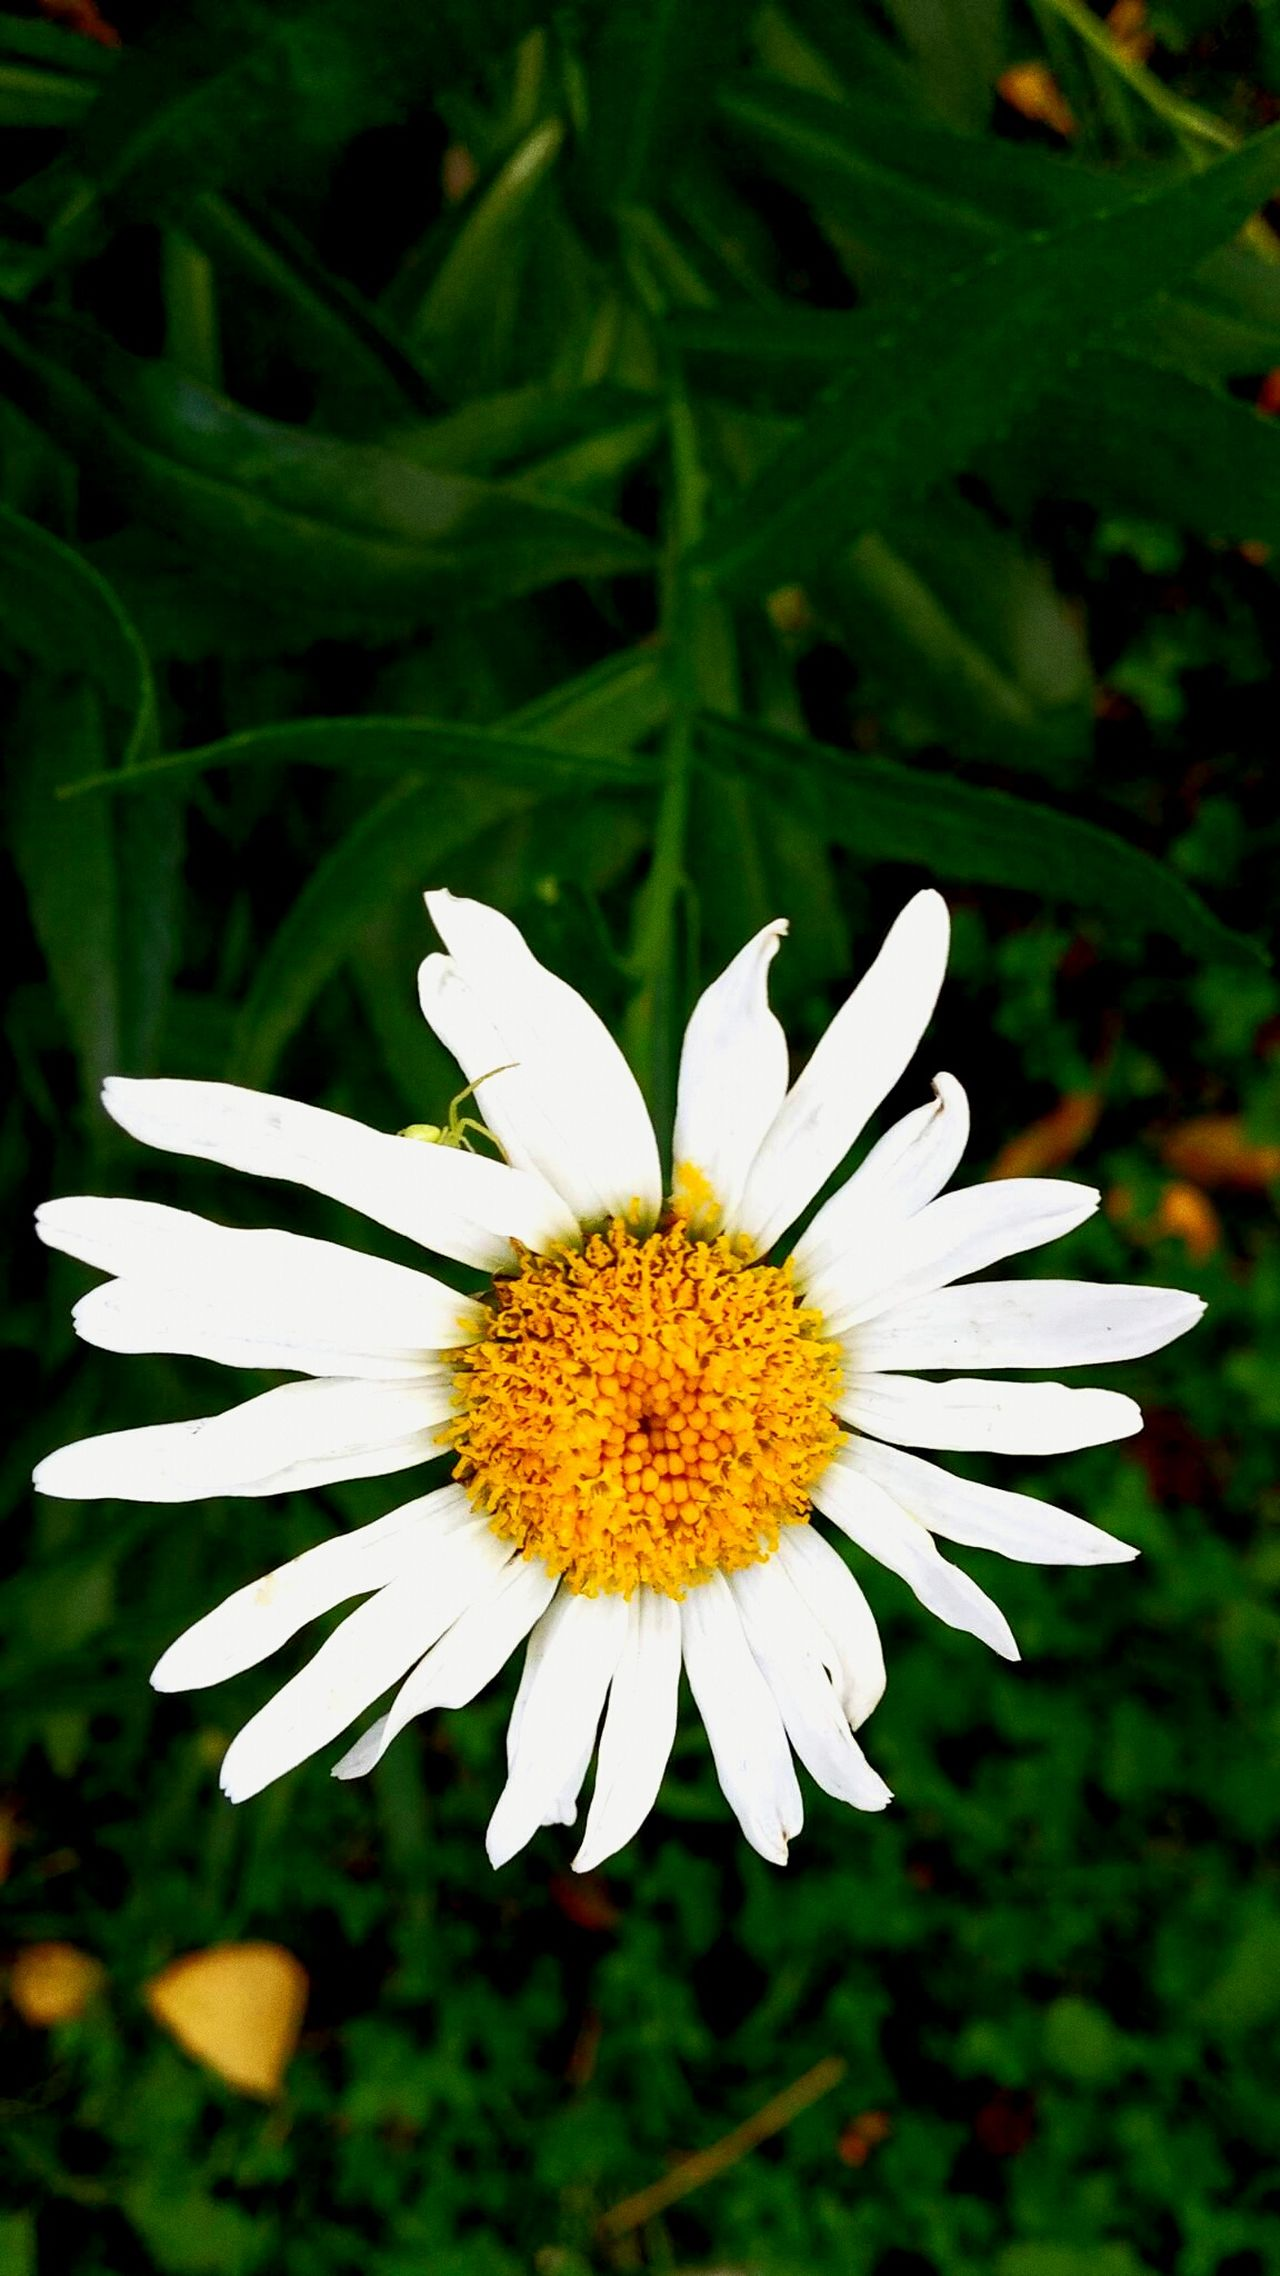 LGg3photography LG G3 Nature Lover Nature_collection Nice Day Nature Grass Flower Beauty In Nature Green Color Plant Flower Head Summer Camomile Camomile White Petals Greenspider Naturallove